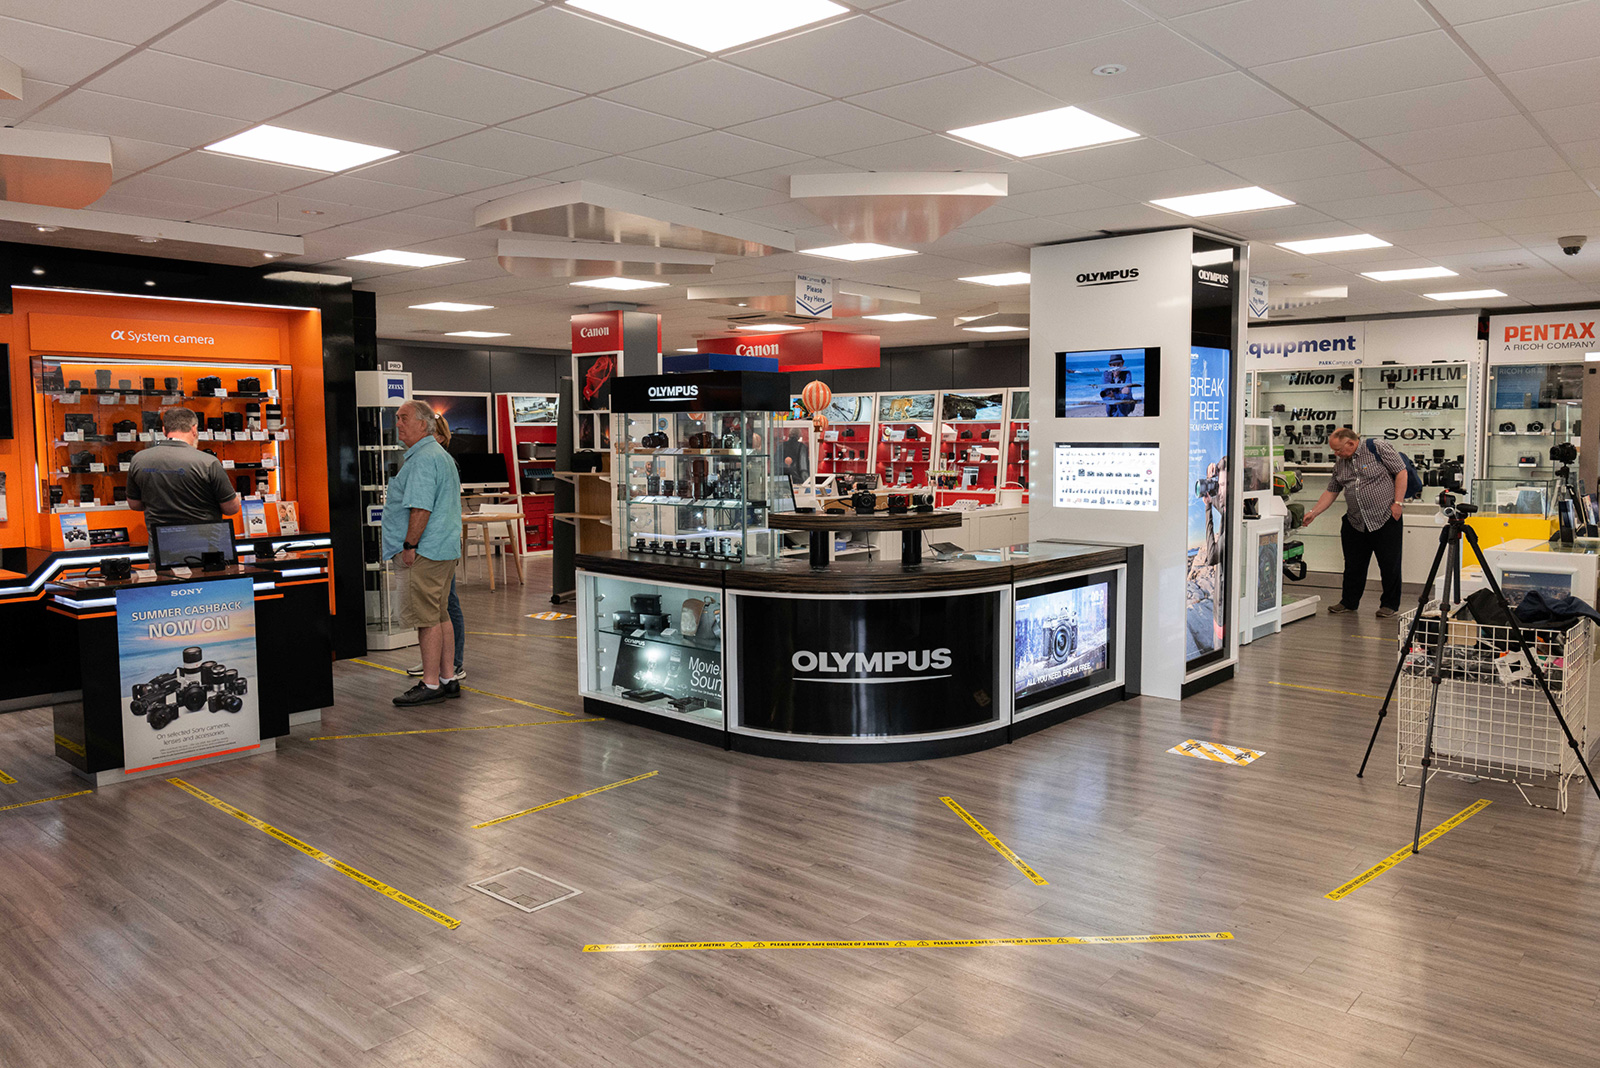 Shop floor with Covid protection